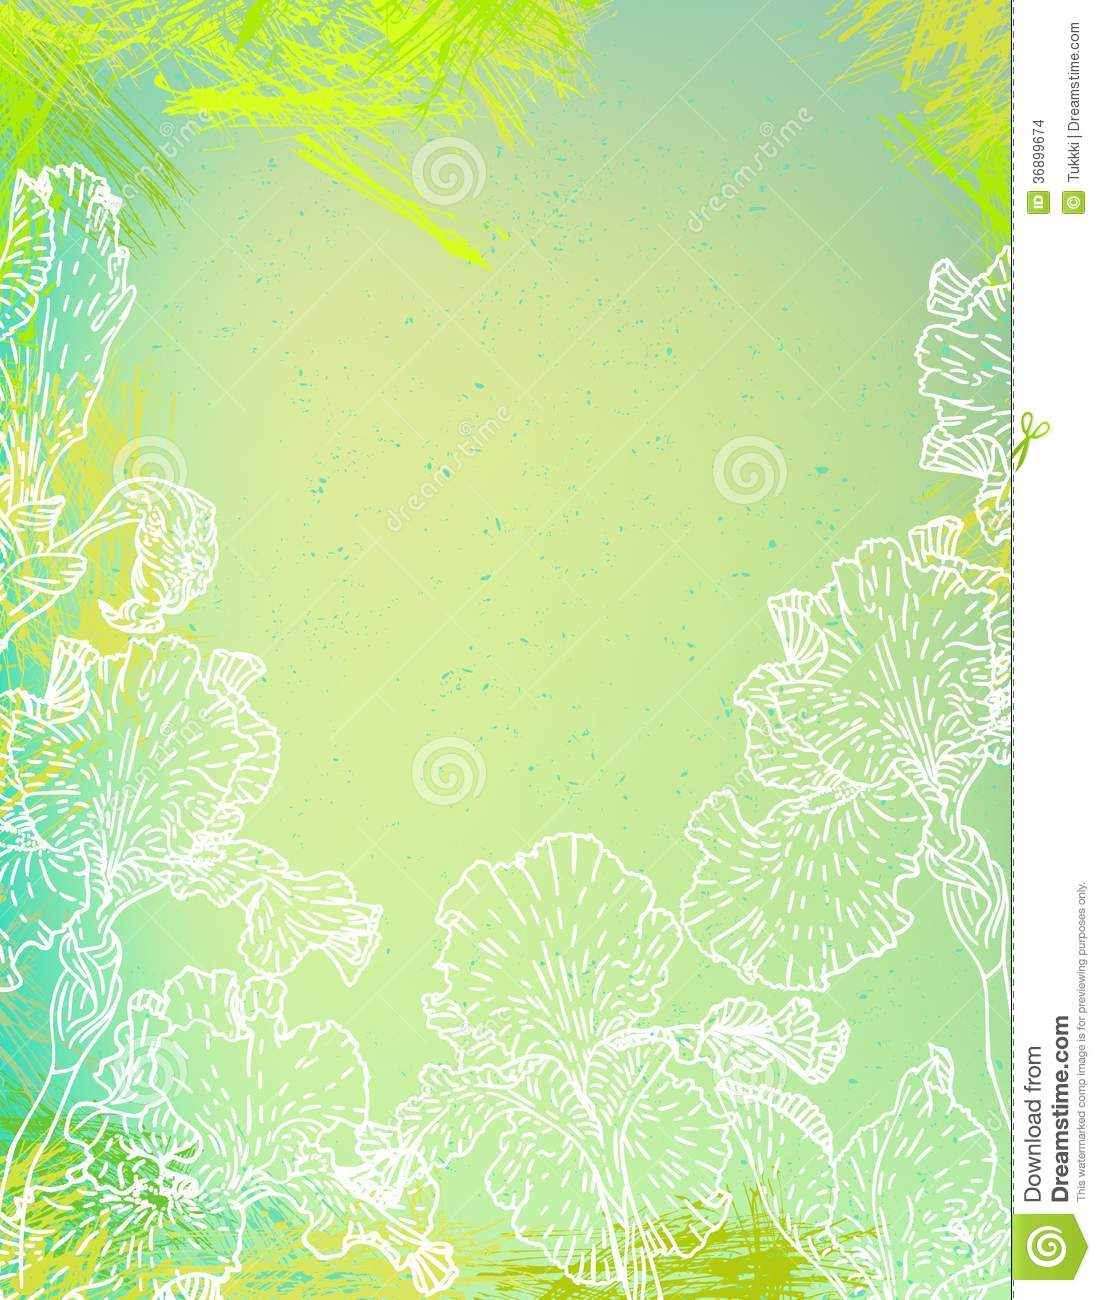 Card With Iris Flowers On Green Watercolour Stock Vector